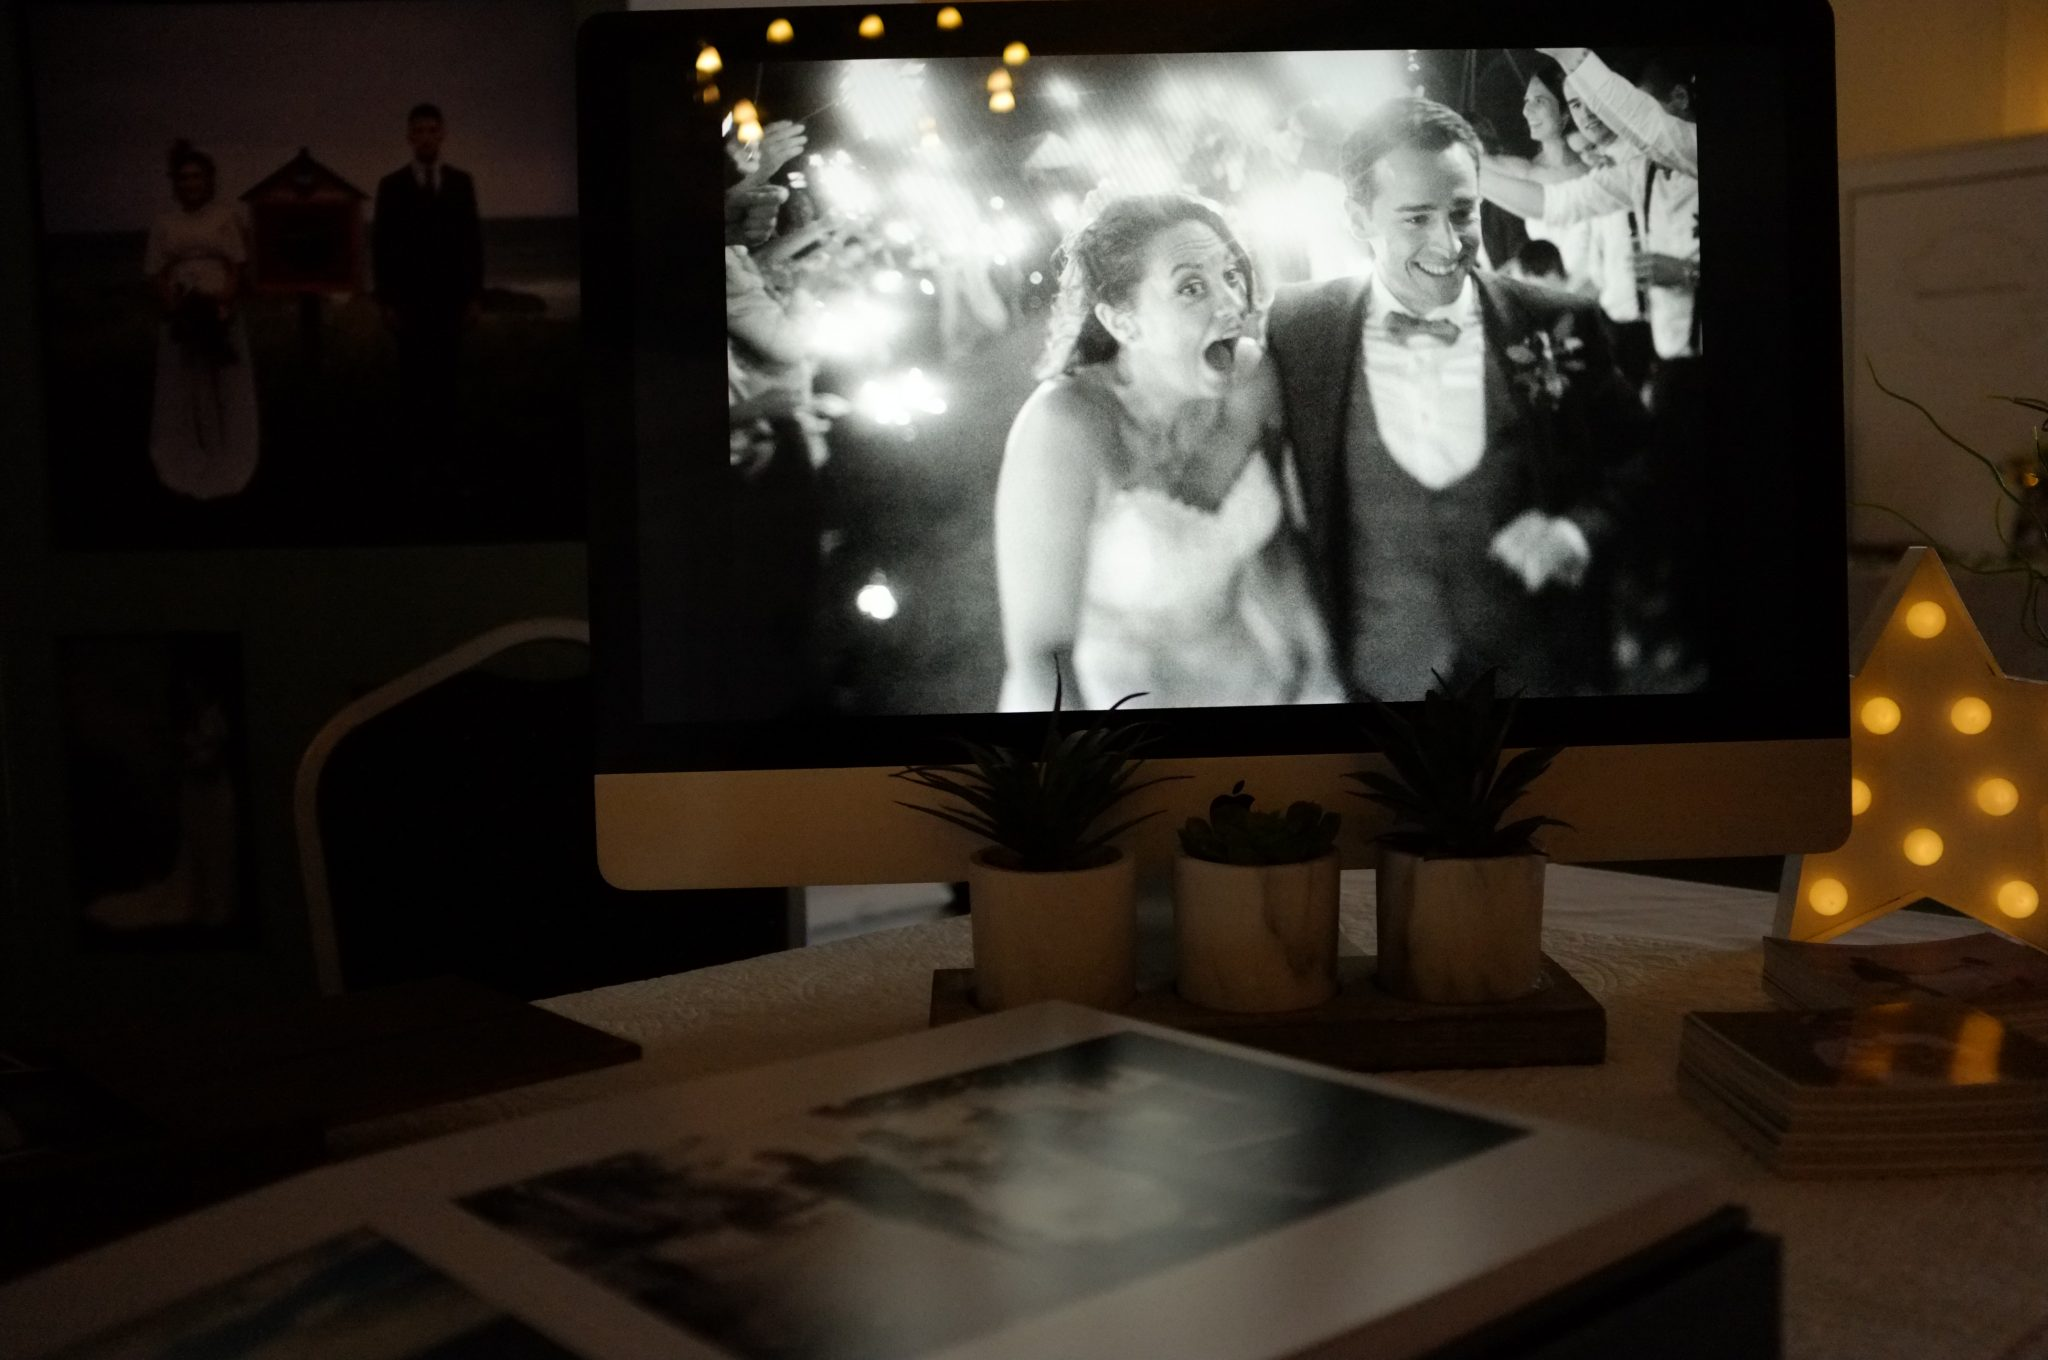 iMac screen on wedding fair stand with a picture of a surprised bride and groom